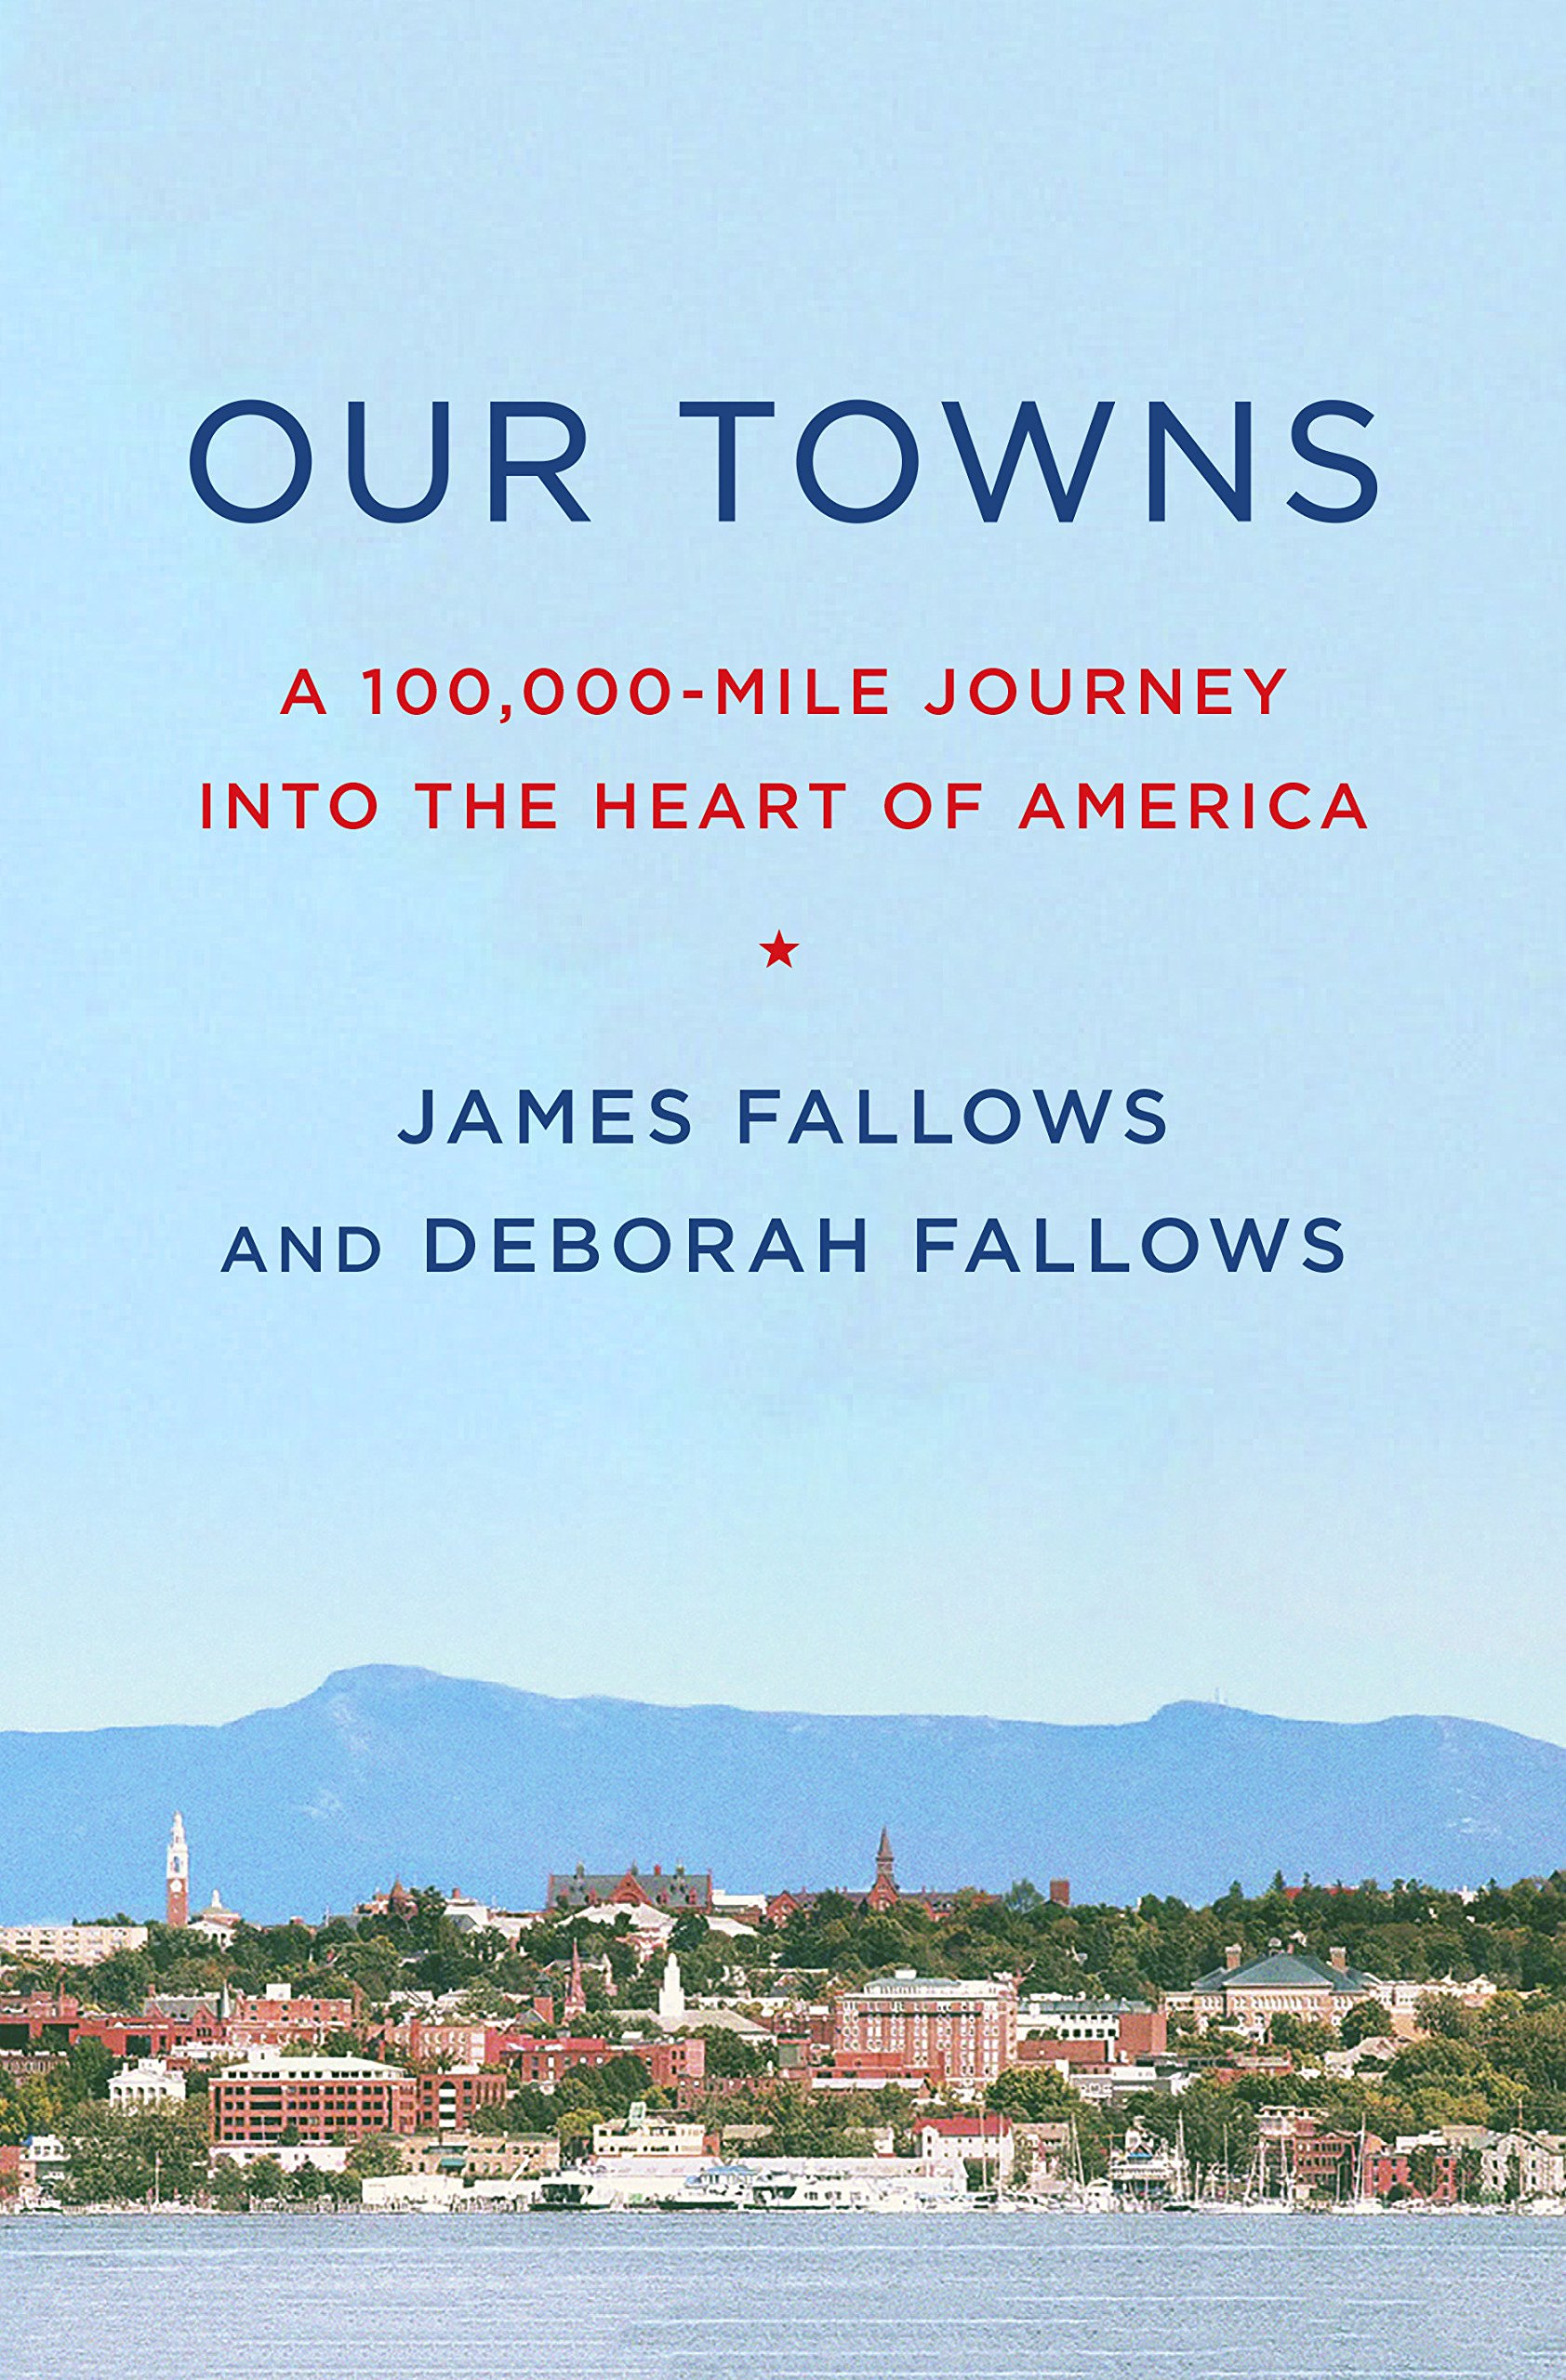 Other Voices, Other Towns: The Travelers Story